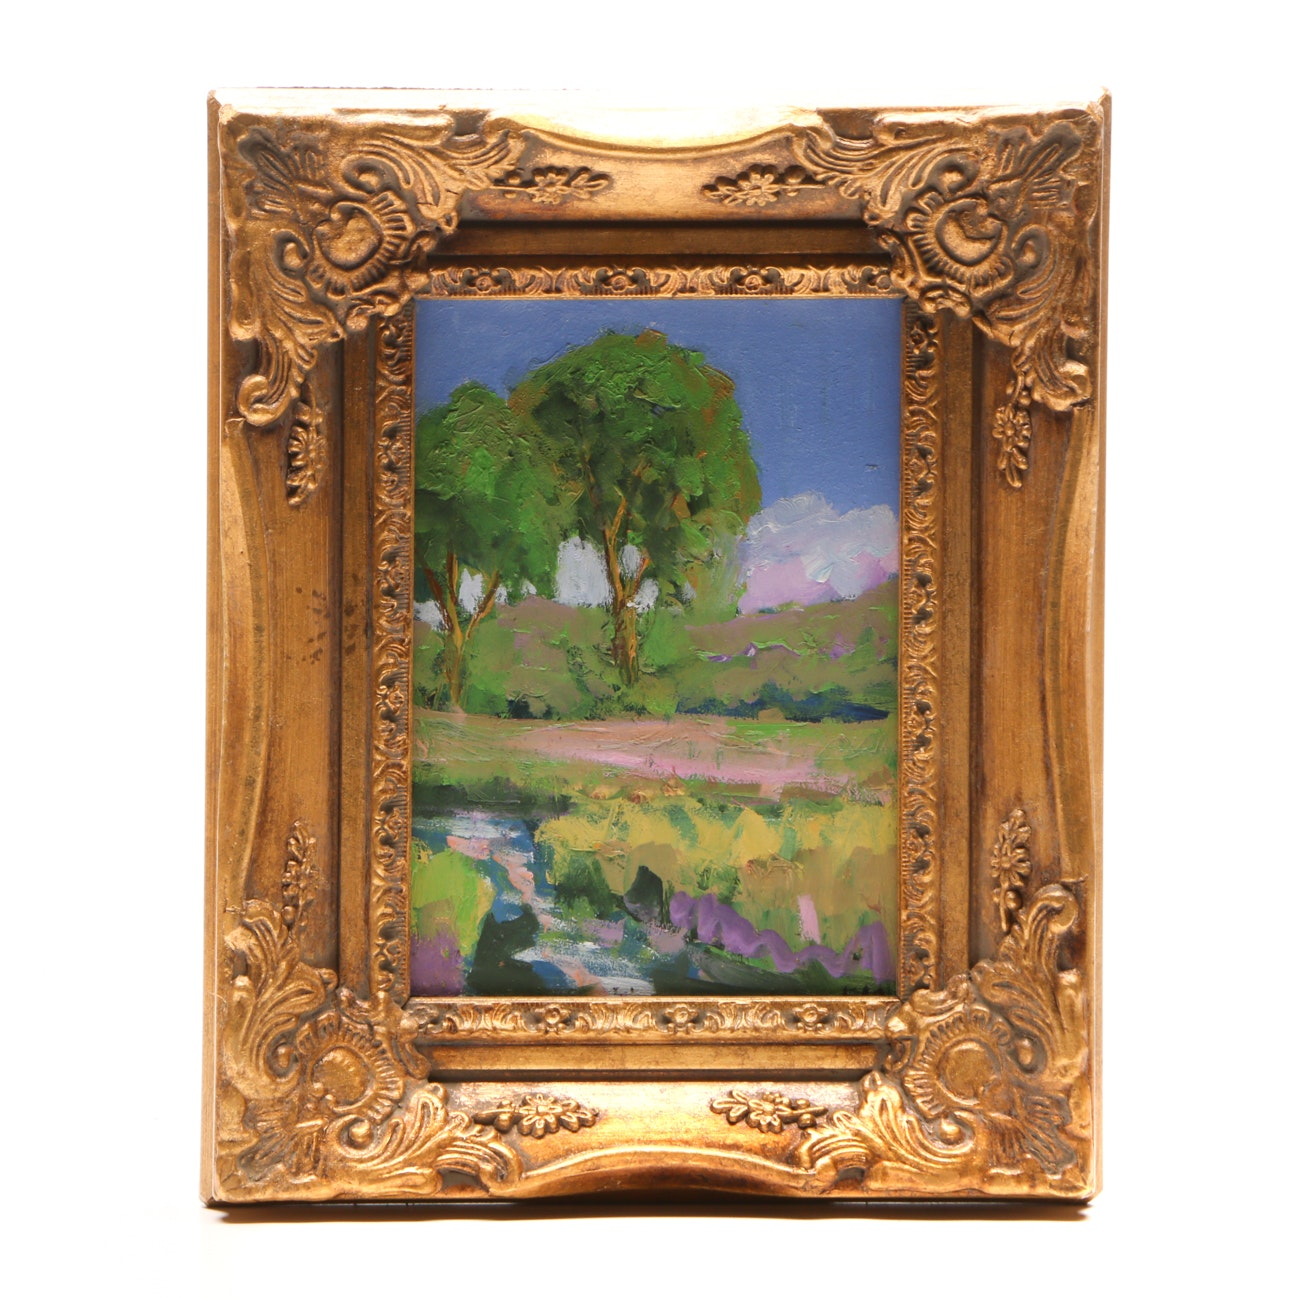 Ken Burnside Impressionist Oil Painting on Masonite of Verdant Landscape